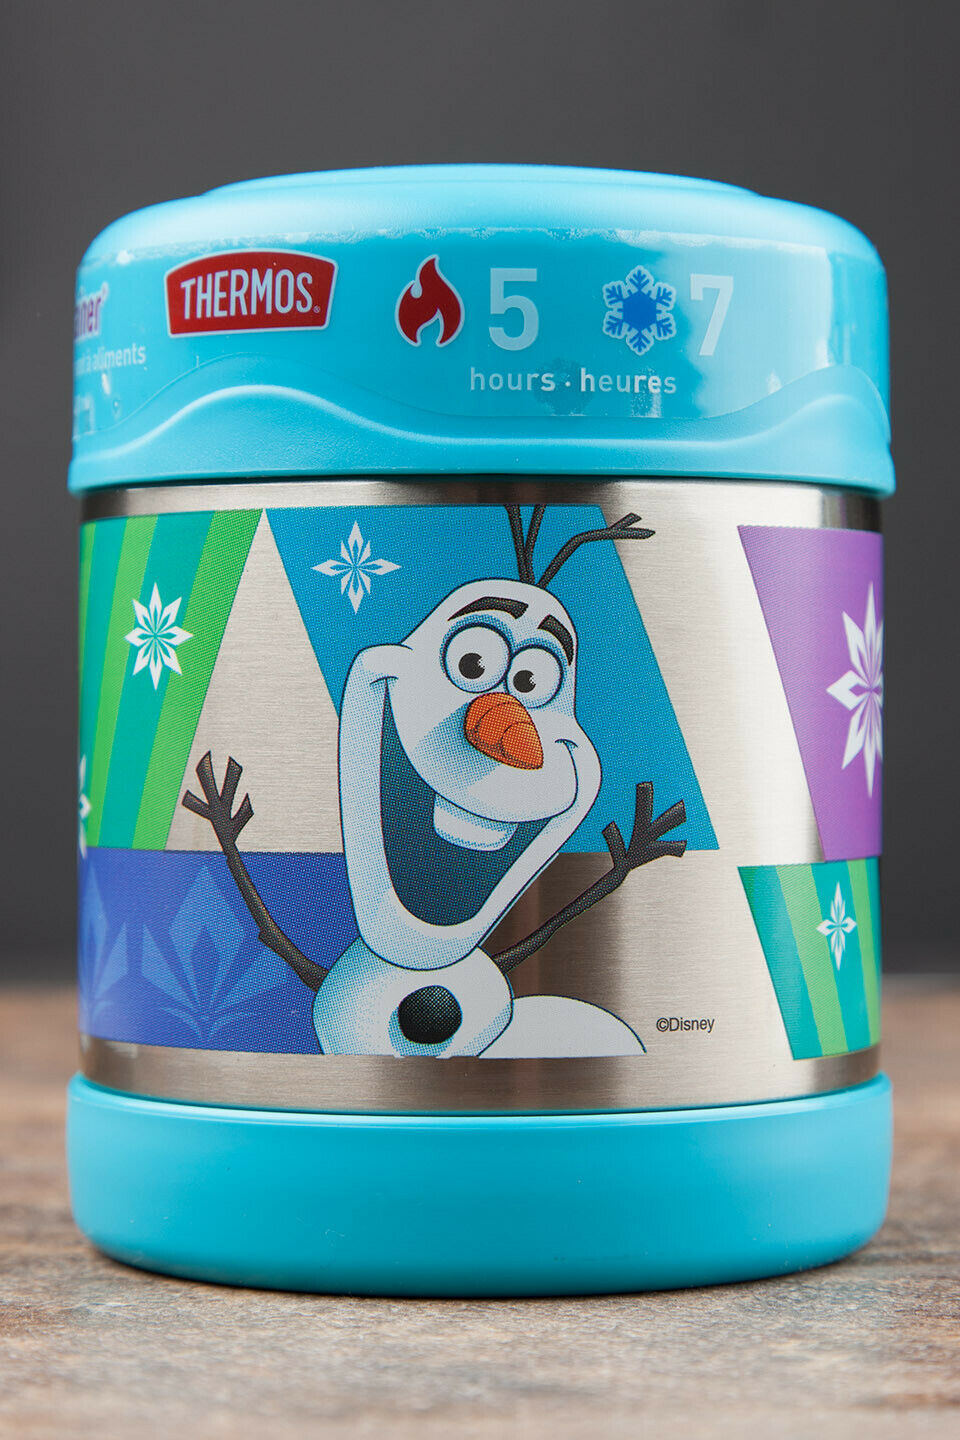 Disney Frozen Hot/Cold Thermos FUNtainer Food Jar - Elsa, An